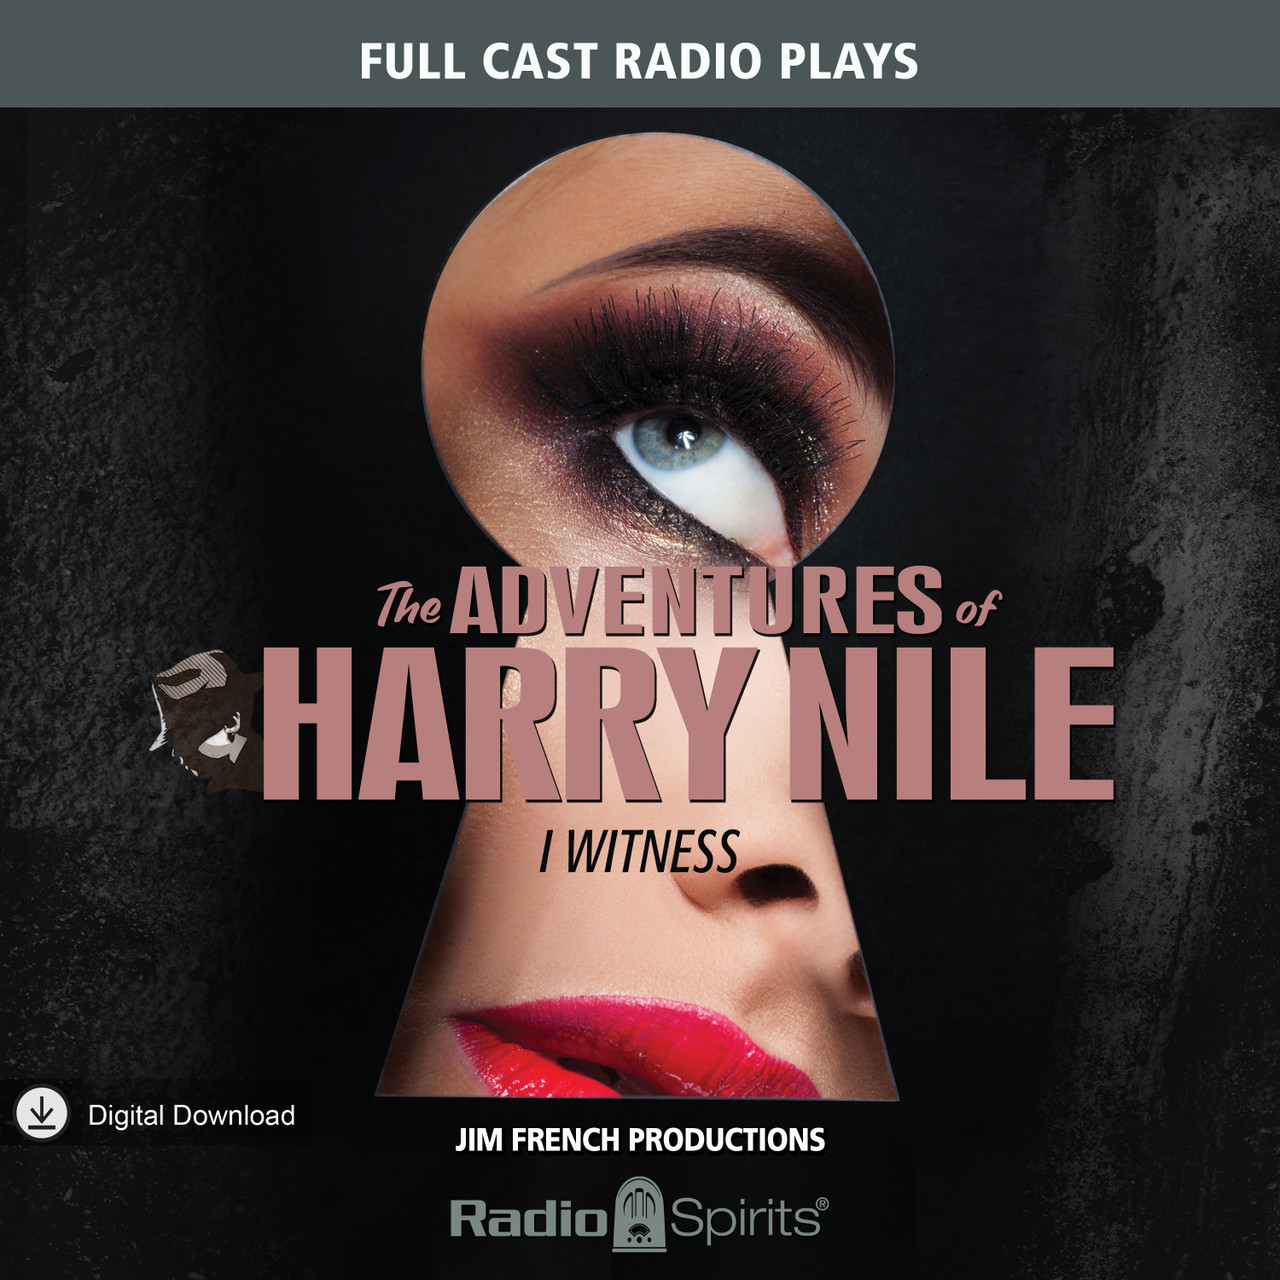 Harry Nile: I Witness (MP3 Download)